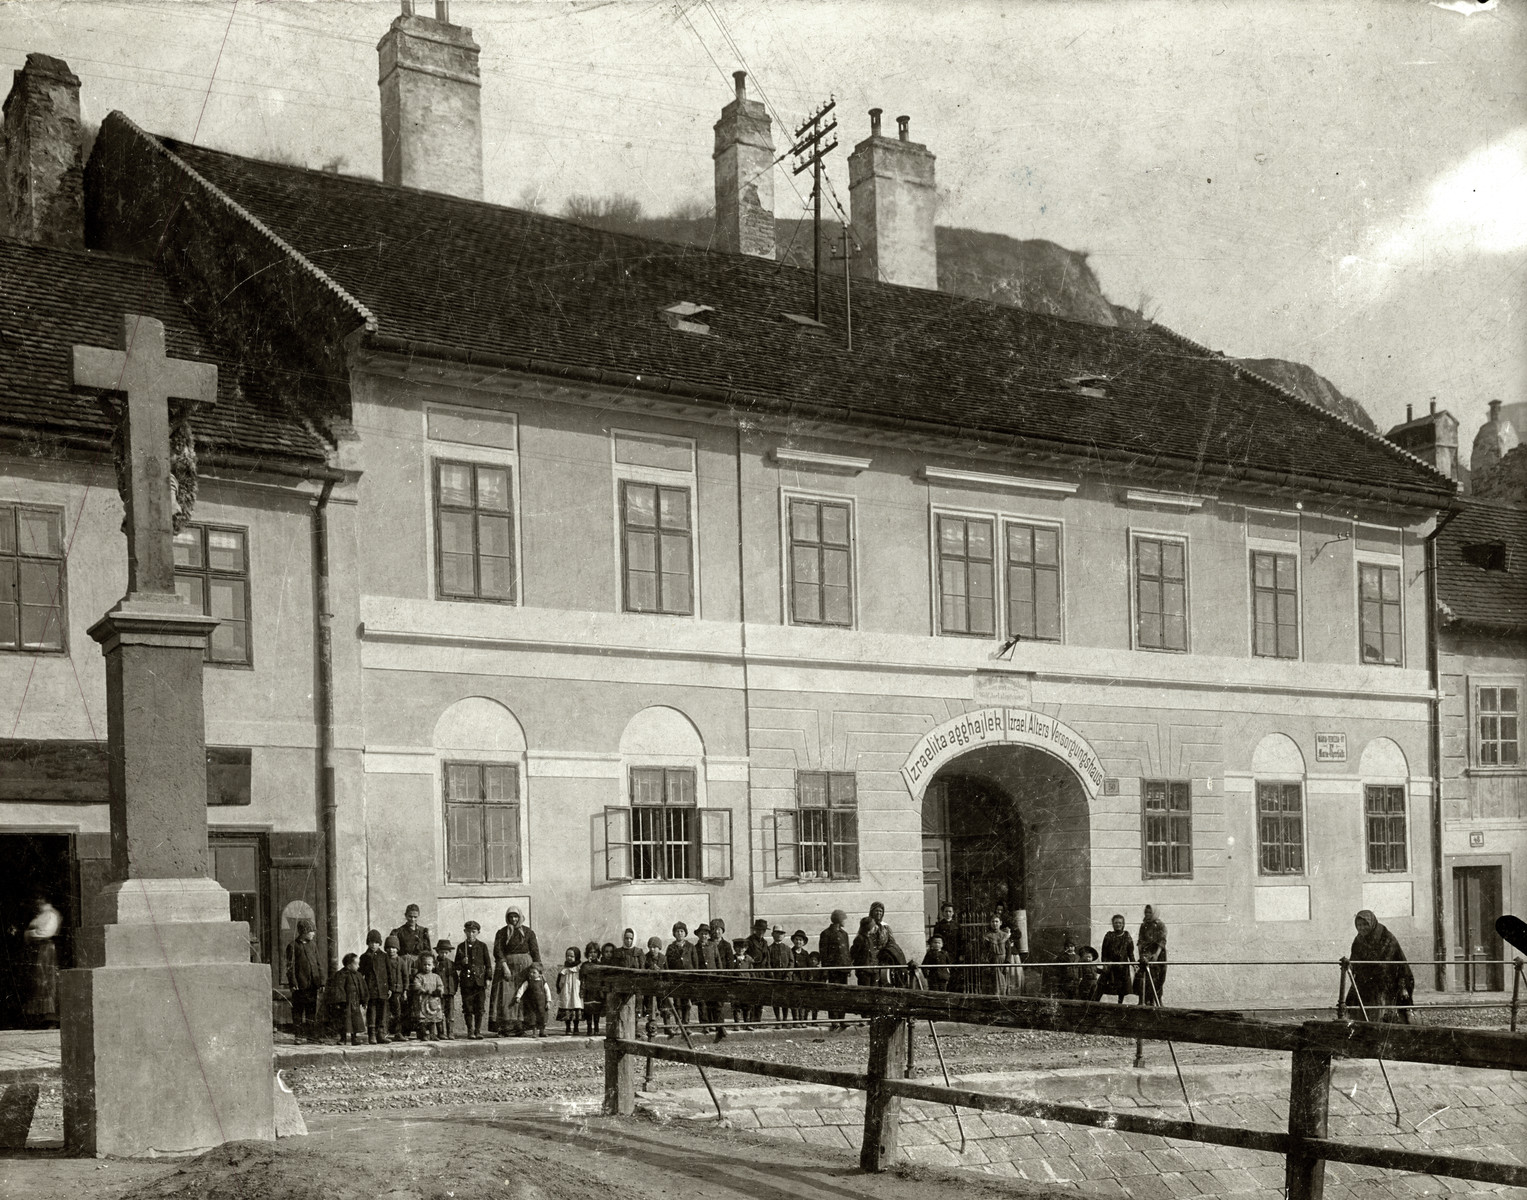 Exterior view of the Jewish Old Age Home in Bratislava.